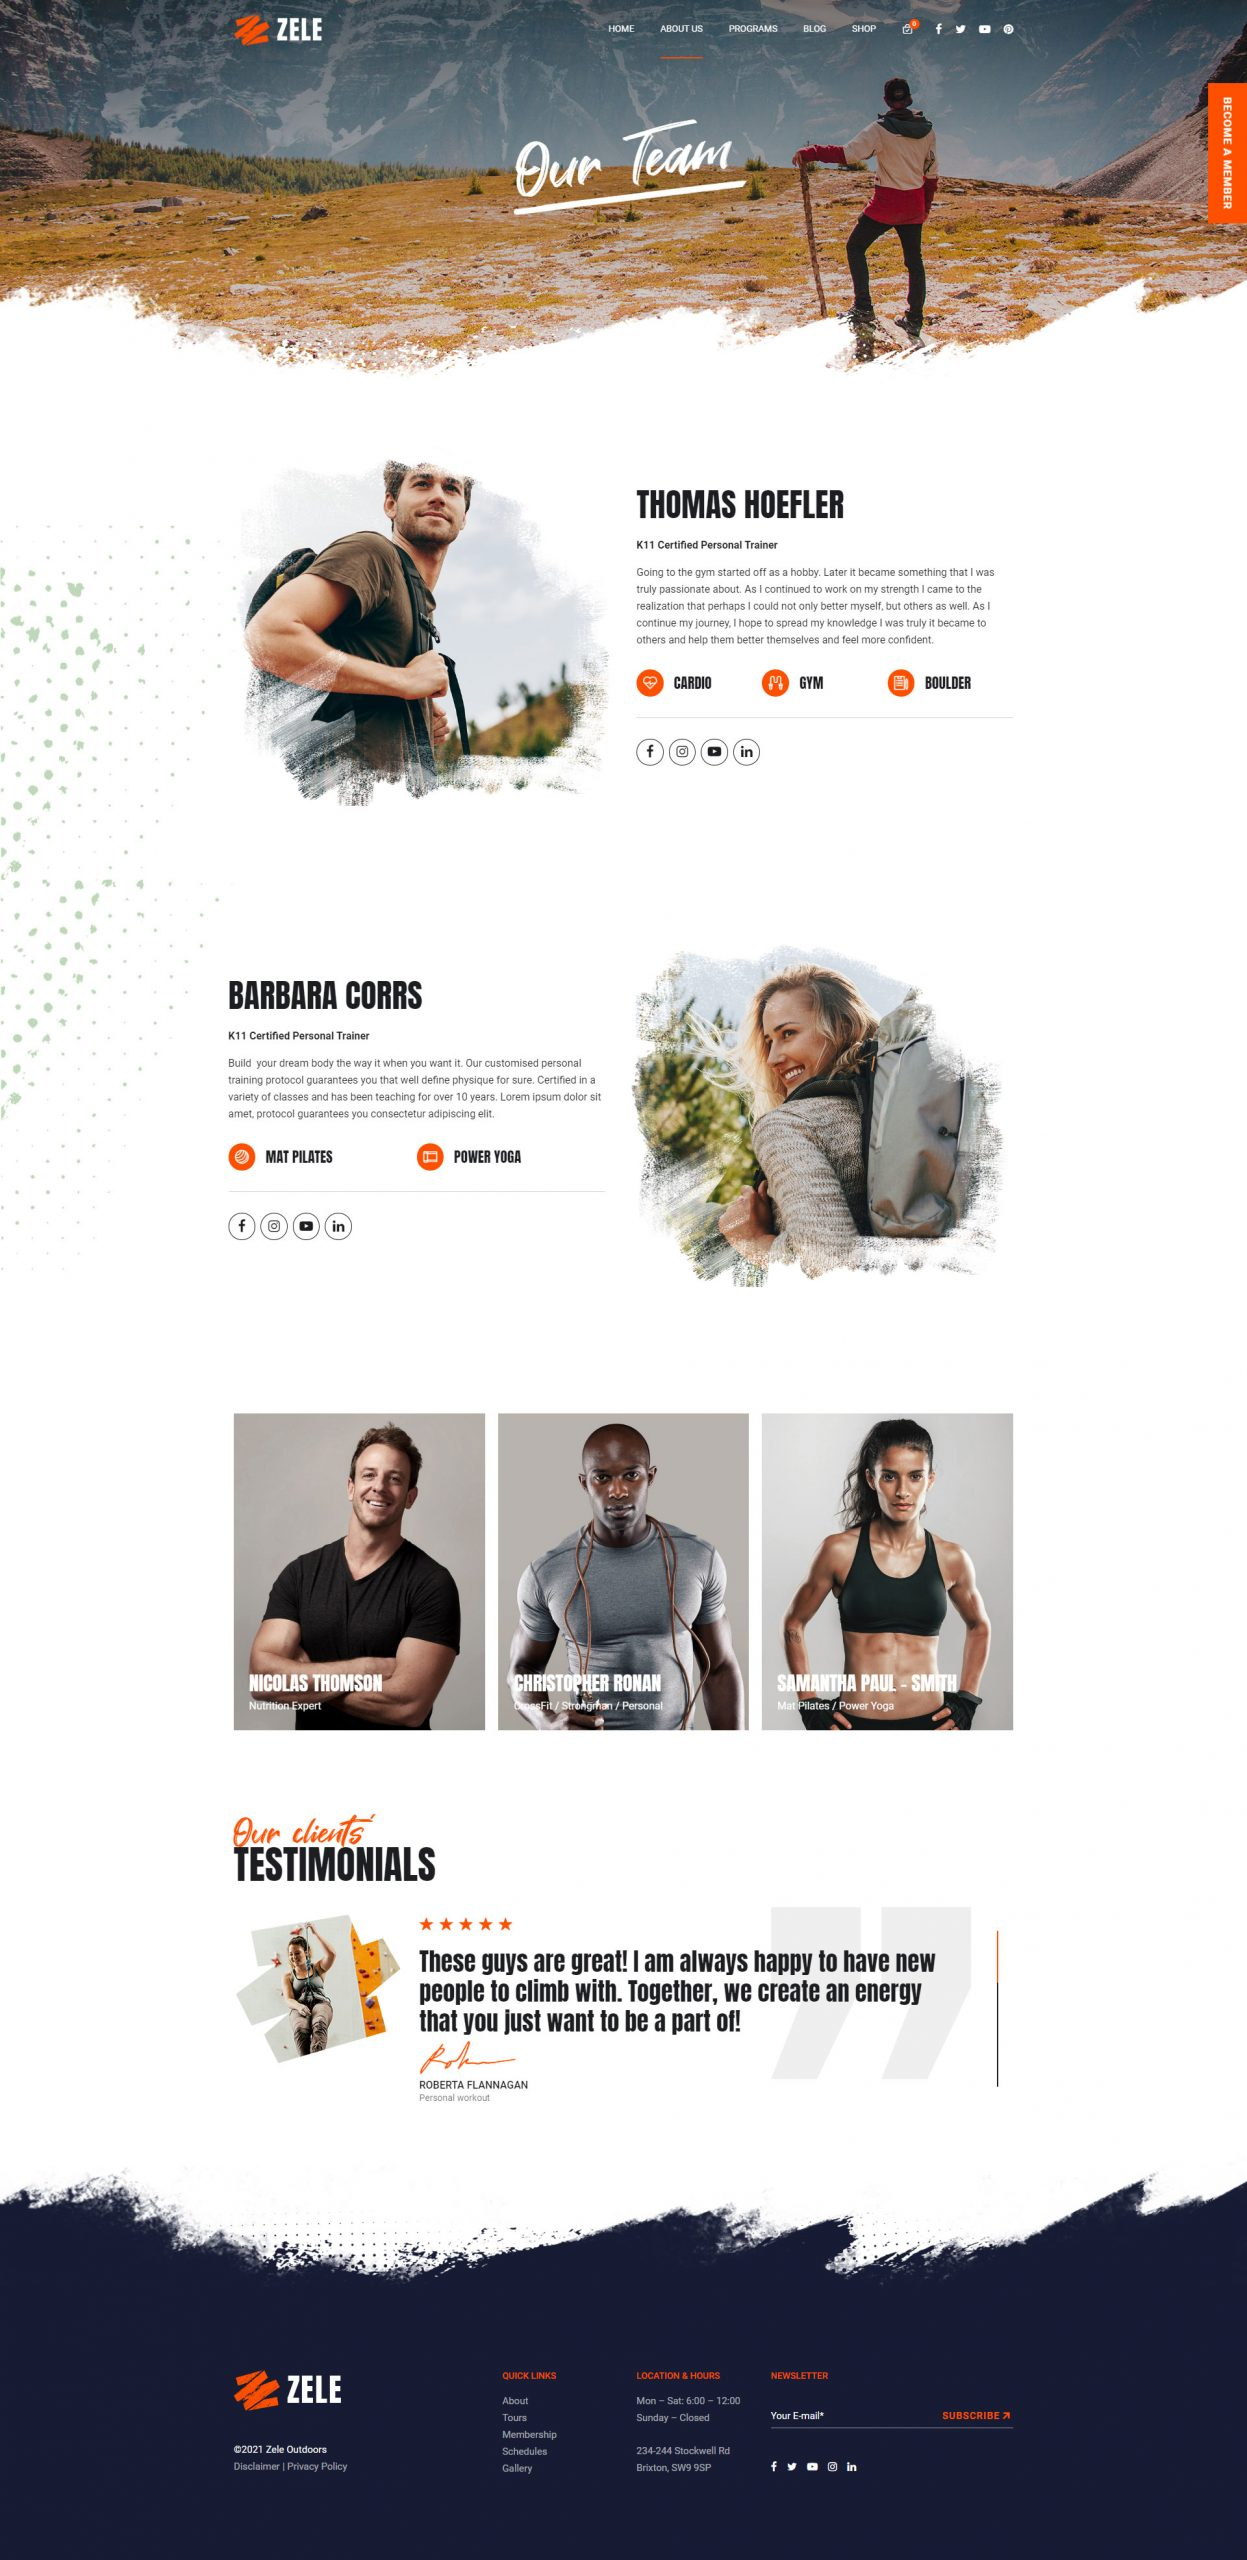 http://zele.bold-themes.com/wp-content/uploads/2021/07/Rough-Team-scaled-1.jpg